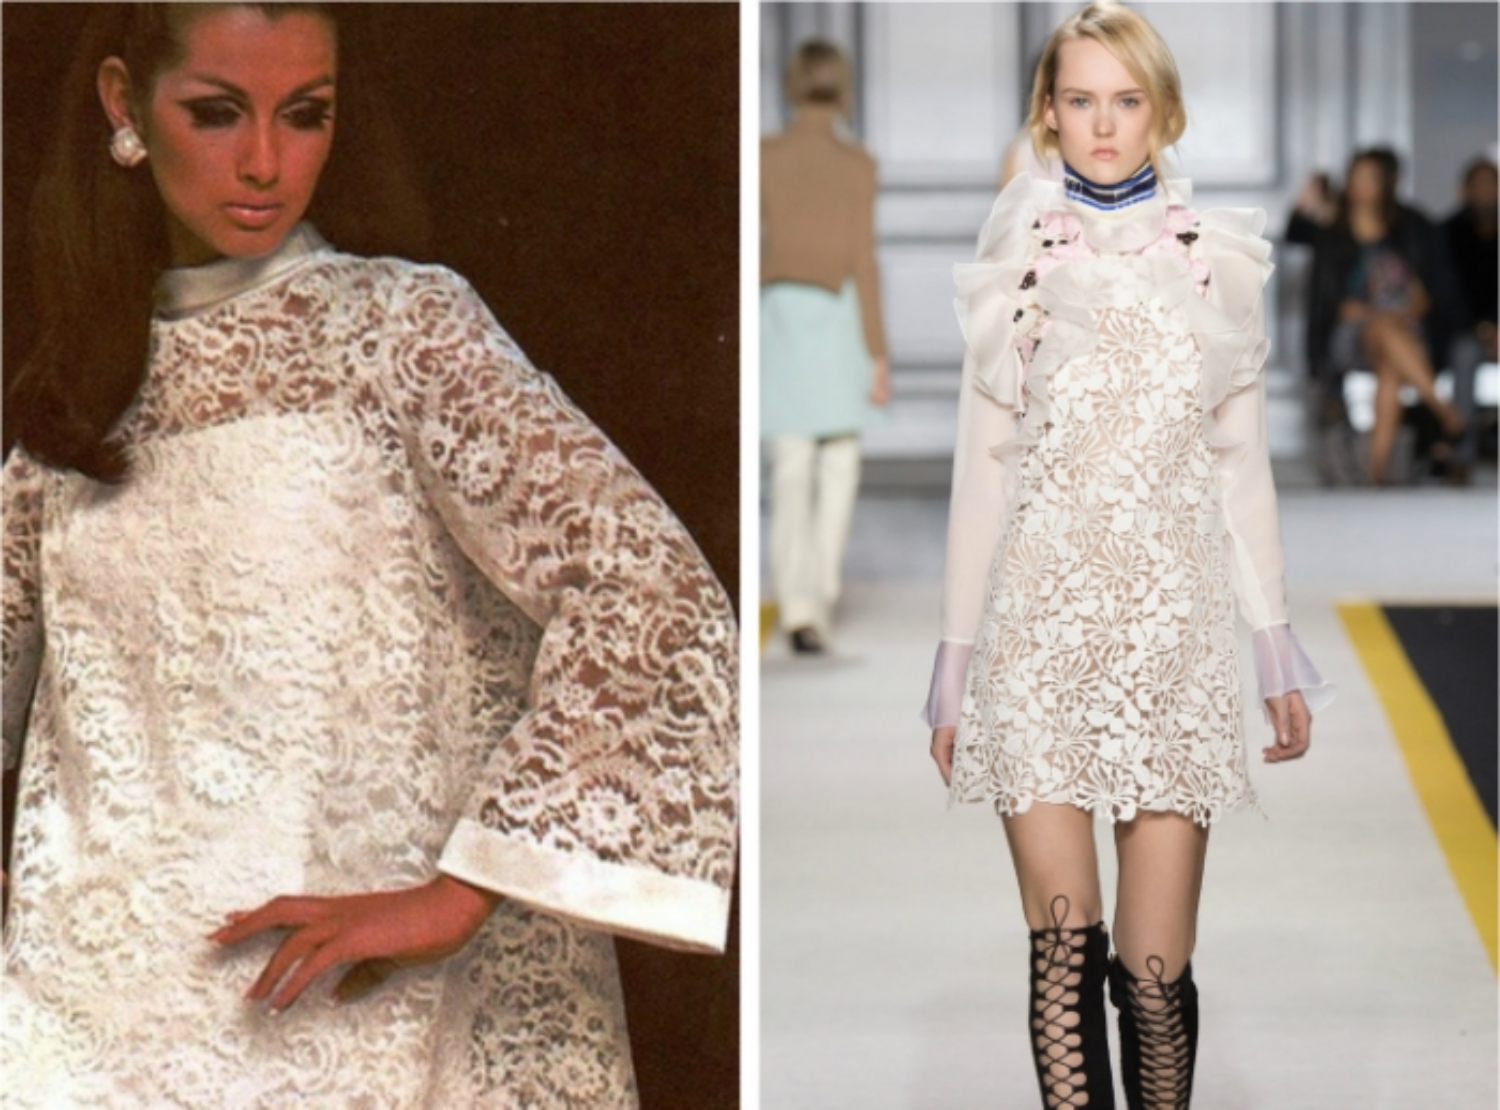 From left to right:Veronica Hamel wearingPierre Balmain forFrench Vogue, December 1969, and the Giambattista Vallicollection at Fashion Week, Fall 2015.